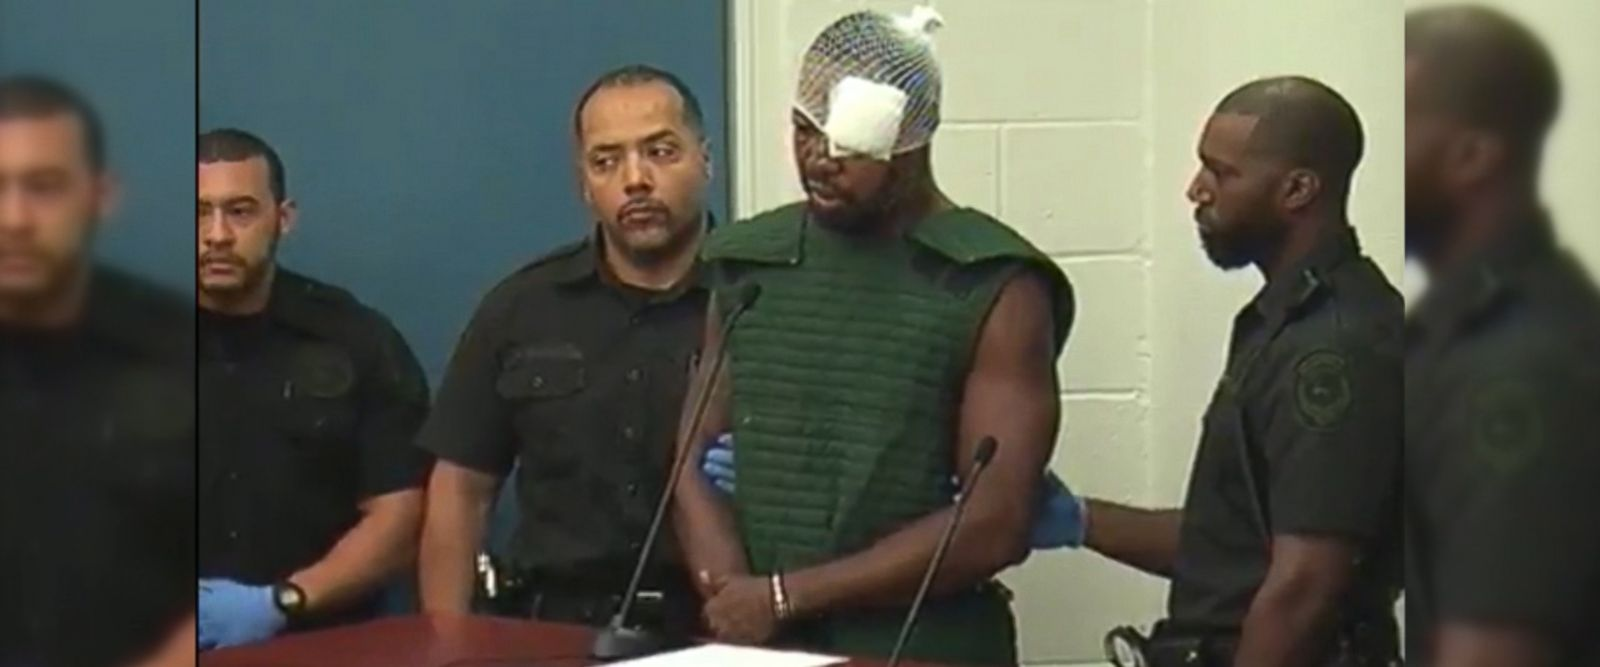 VIDEO: Markeith Loyd, who was wanted for allegedly killing Master Sgt. Debra Clayton of the Orlando Police Department as well as his pregnant ex-girlfriend Sade Dixon, said today he wants to defend himself in the murder case of Dixon.